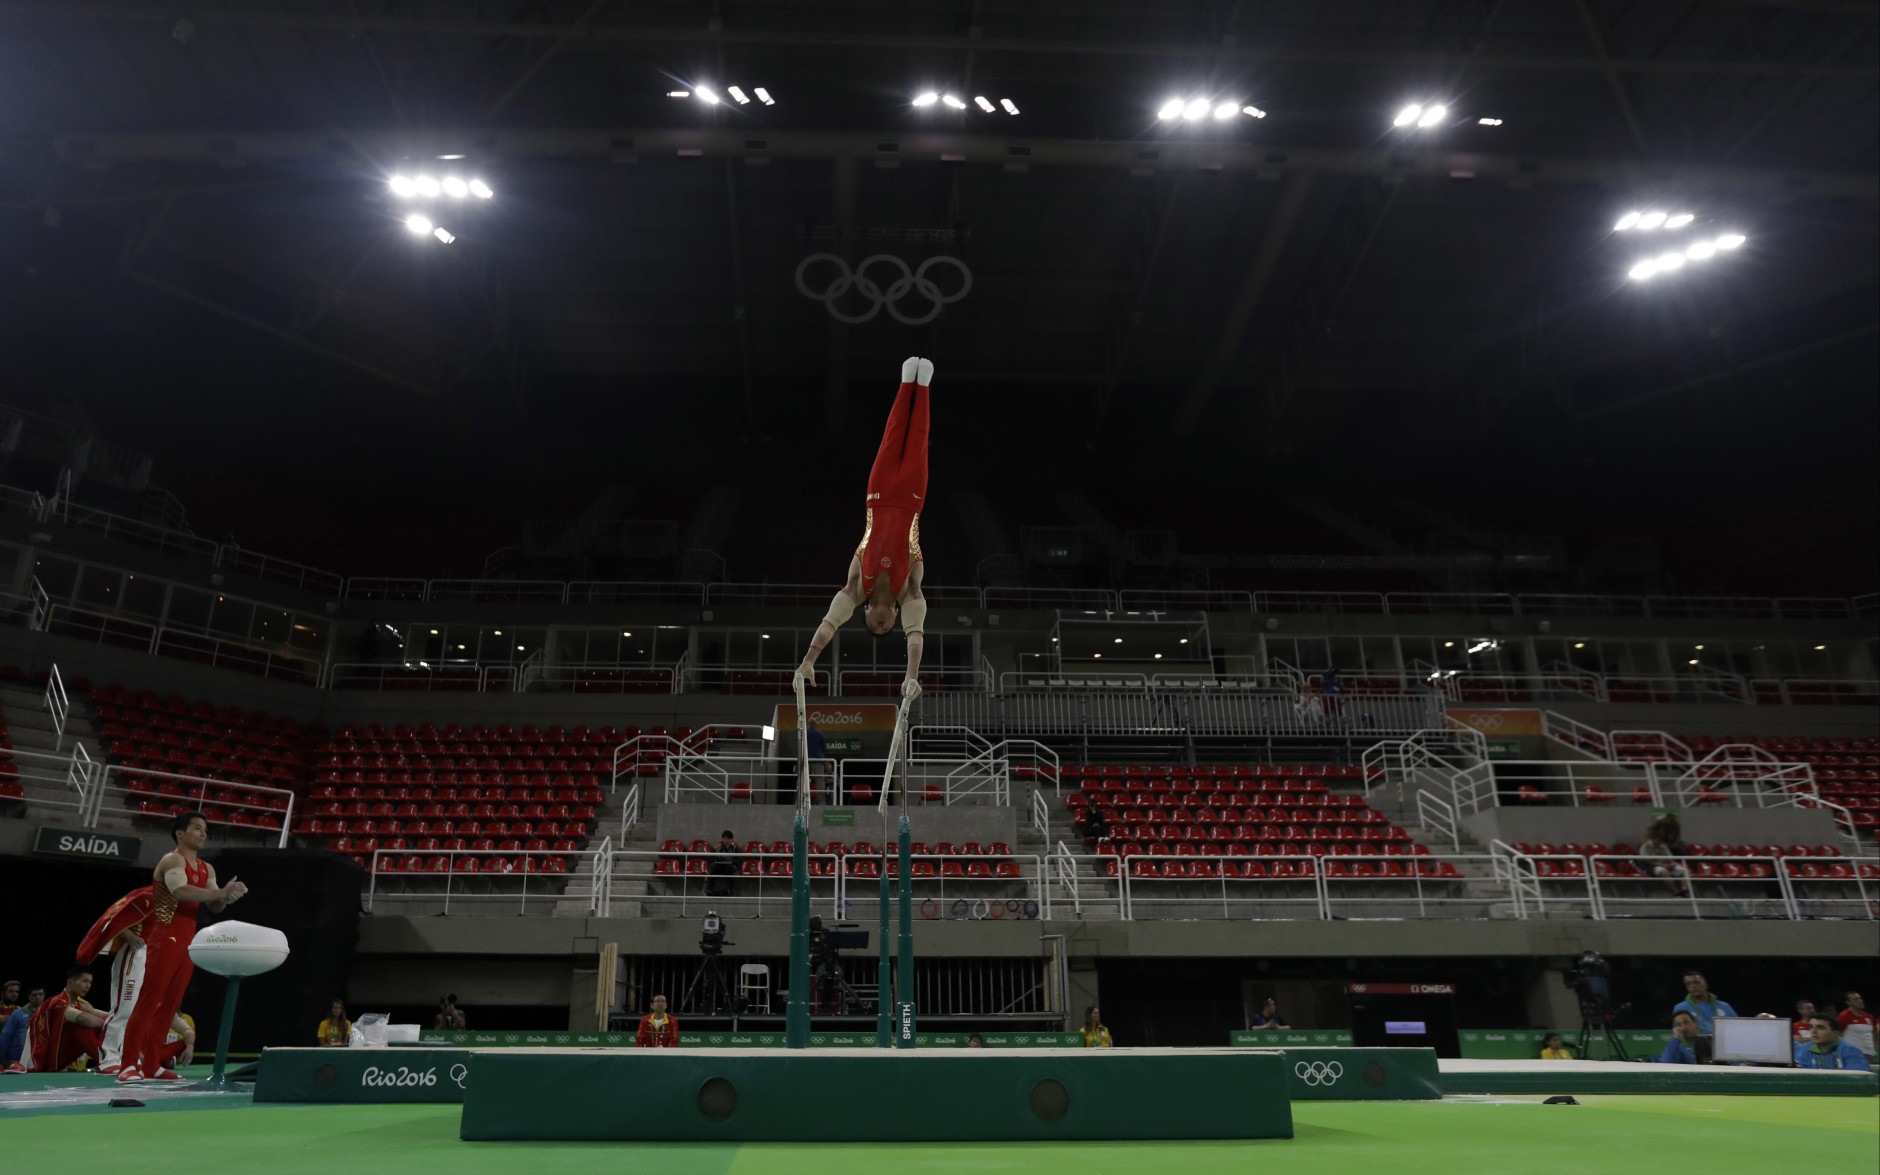 China's gymnast You Hao trains on the parallel bars ahead of the 2016 Summer Olympics in Rio de Janeiro, Brazil, Wednesday, Aug. 3, 2016. (AP Photo/Julio Cortez)